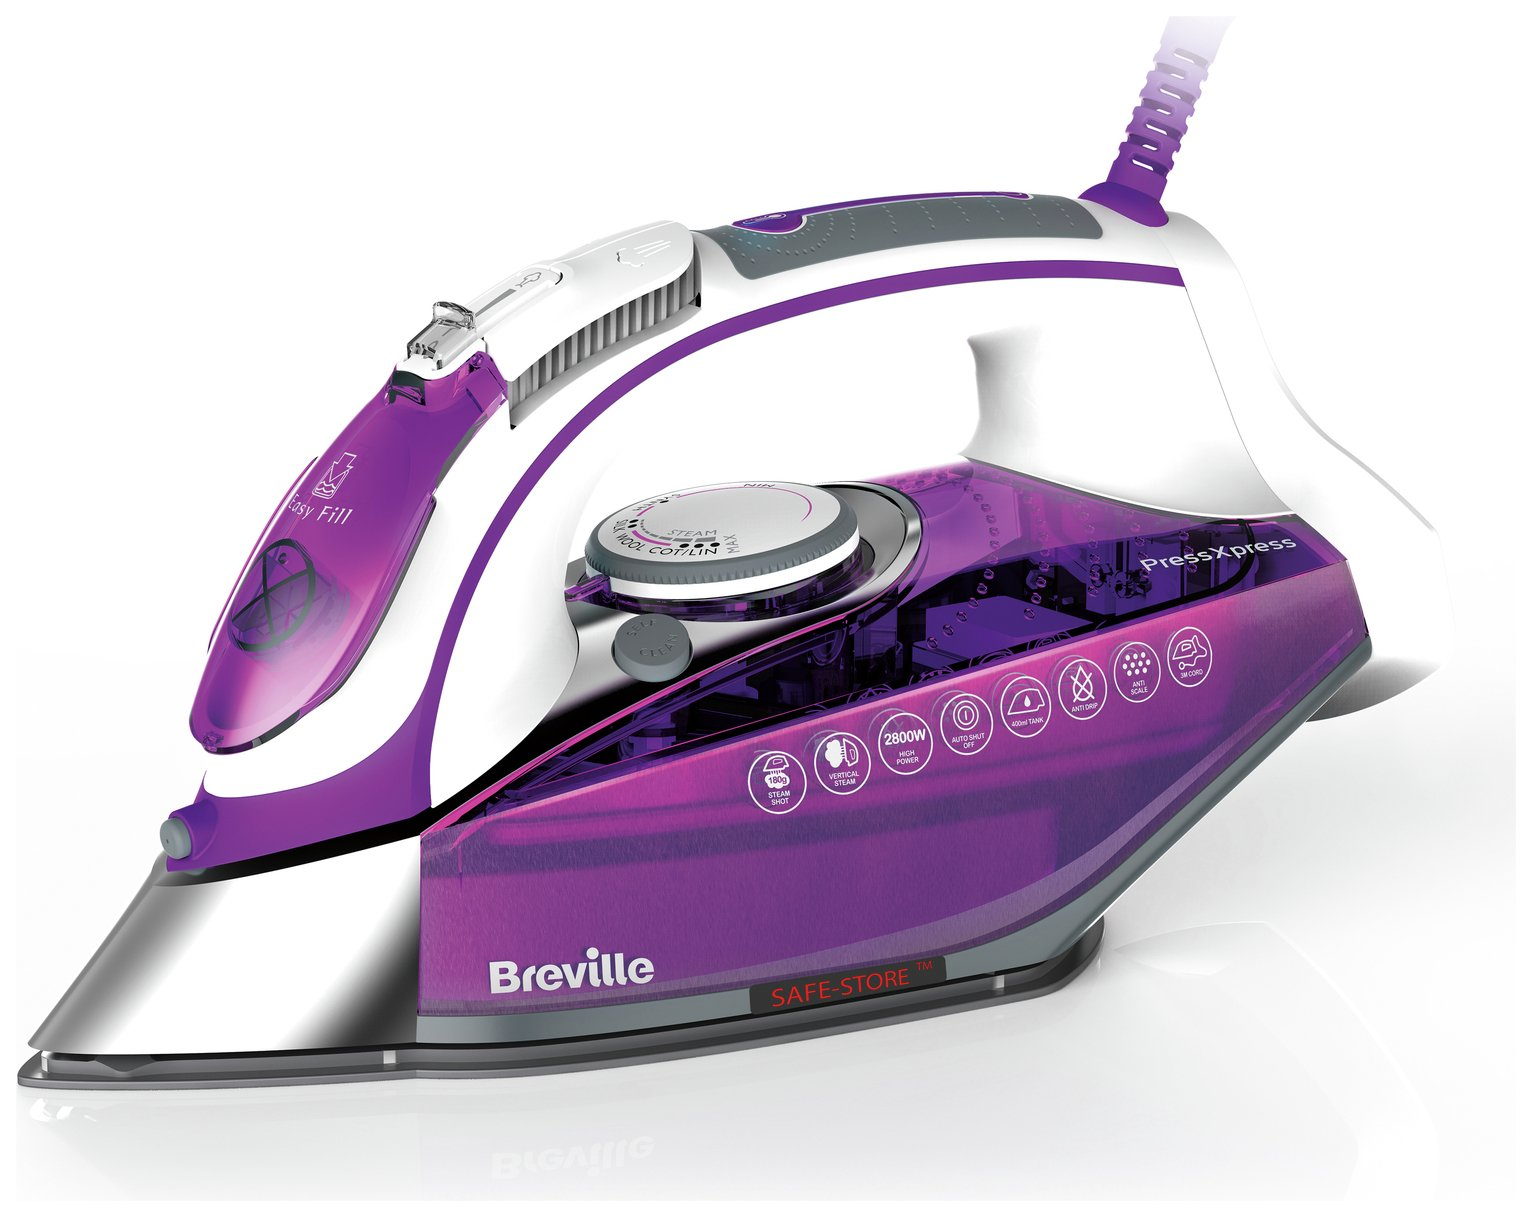 Image of Breville VIN339 PressXpress Steam Iron